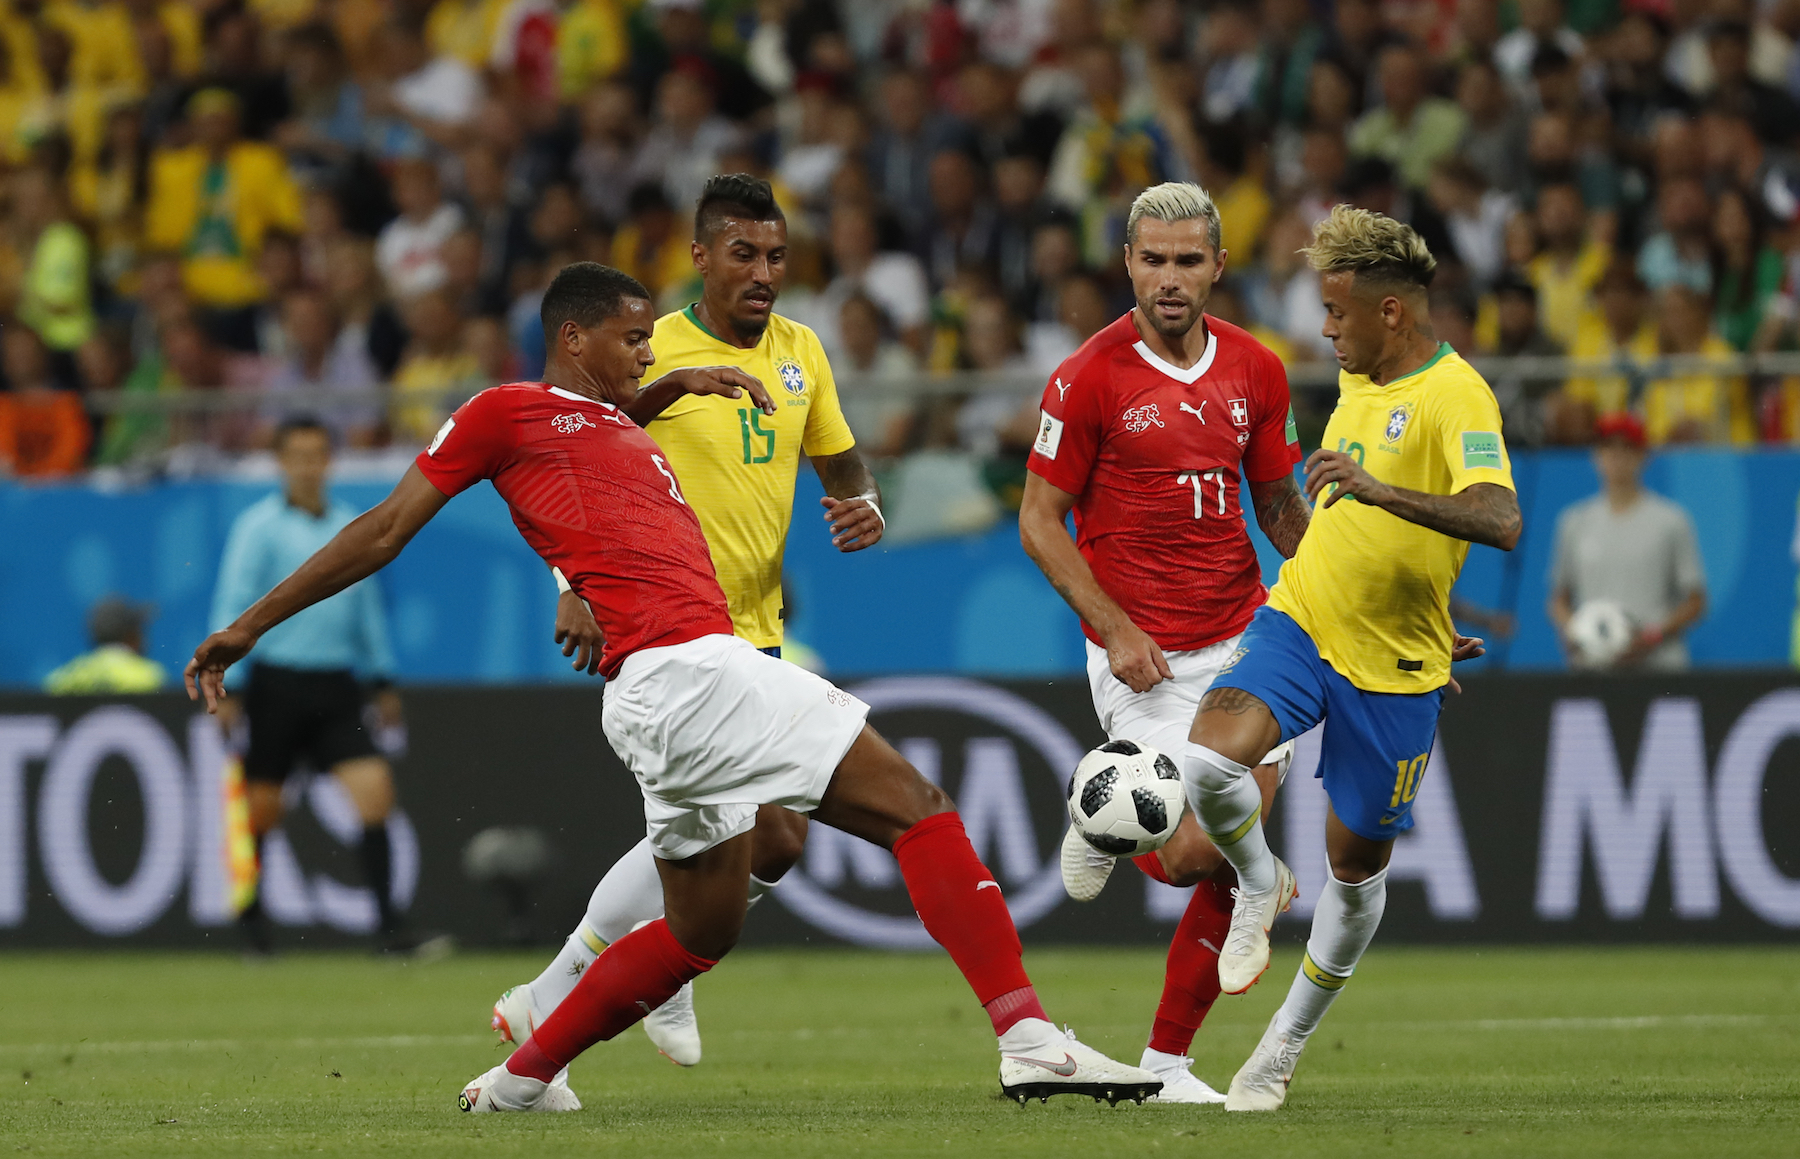 "<div class=""meta image-caption""><div class=""origin-logo origin-image ap""><span>AP</span></div><span class=""caption-text"">Brazil's Neymar, right, duels for the ball with Switzerland's Manuel Akanji during the group E match between Brazil and Switzerland at the 2018 soccer World Cup. (AP Photo/Darko Vojinovic)</span></div>"